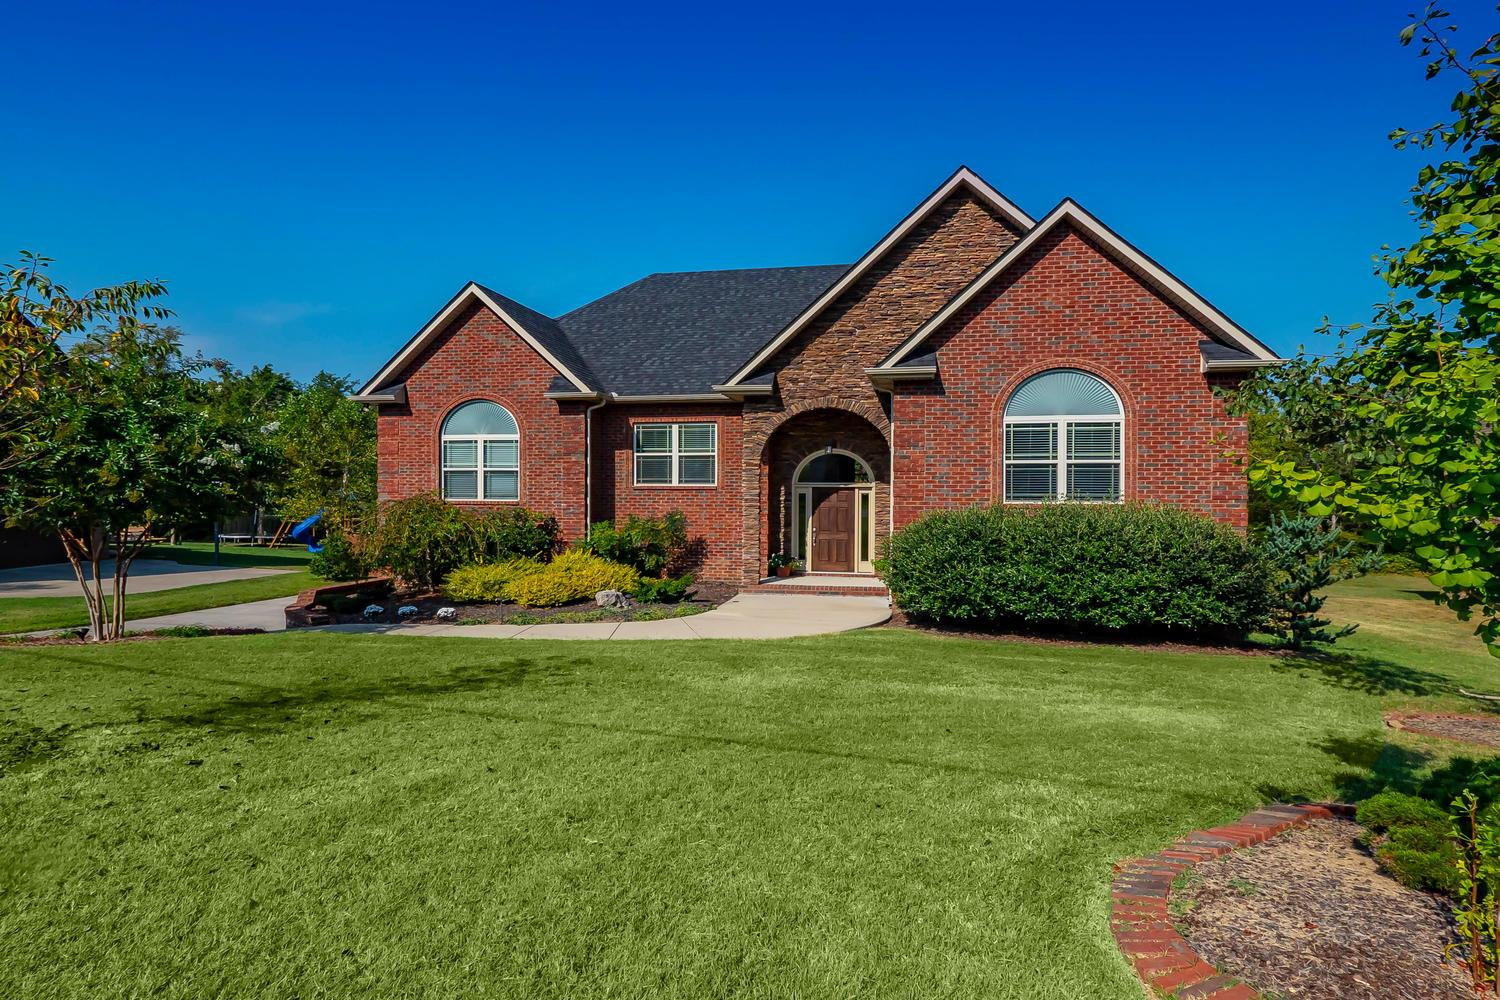 1225 Ben Hill Blvd, Nolensville in Rutherford County County, TN 37135 Home for Sale